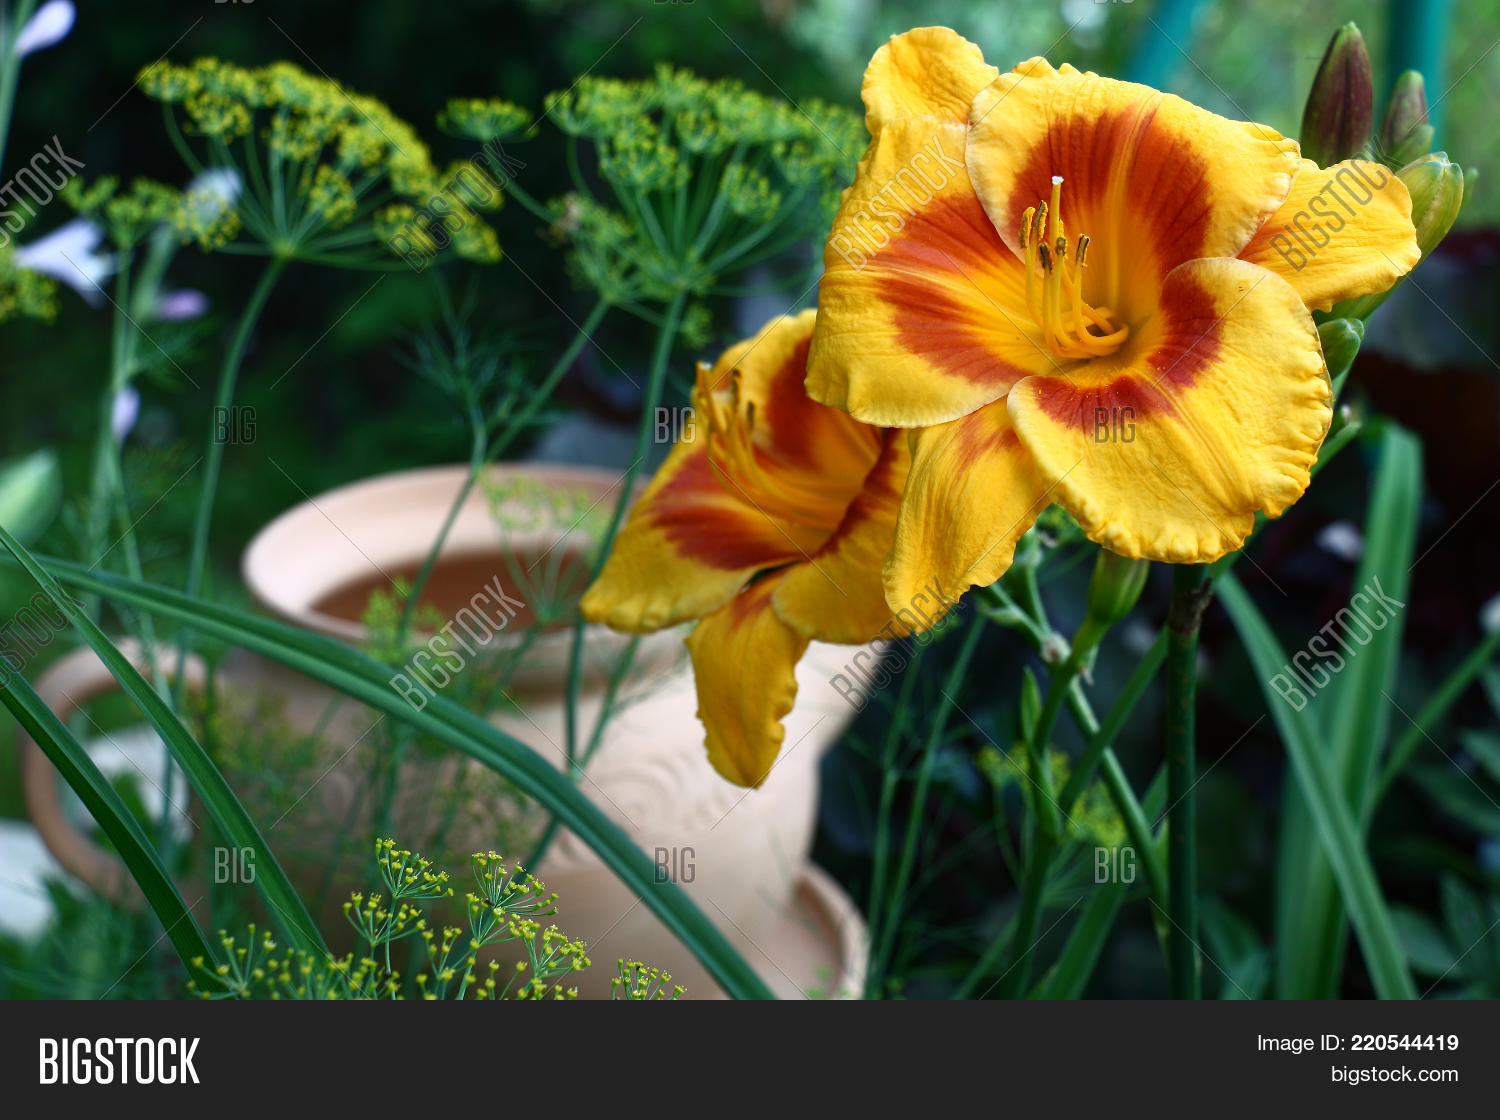 Garden Flower Bed Image Photo Free Trial Bigstock